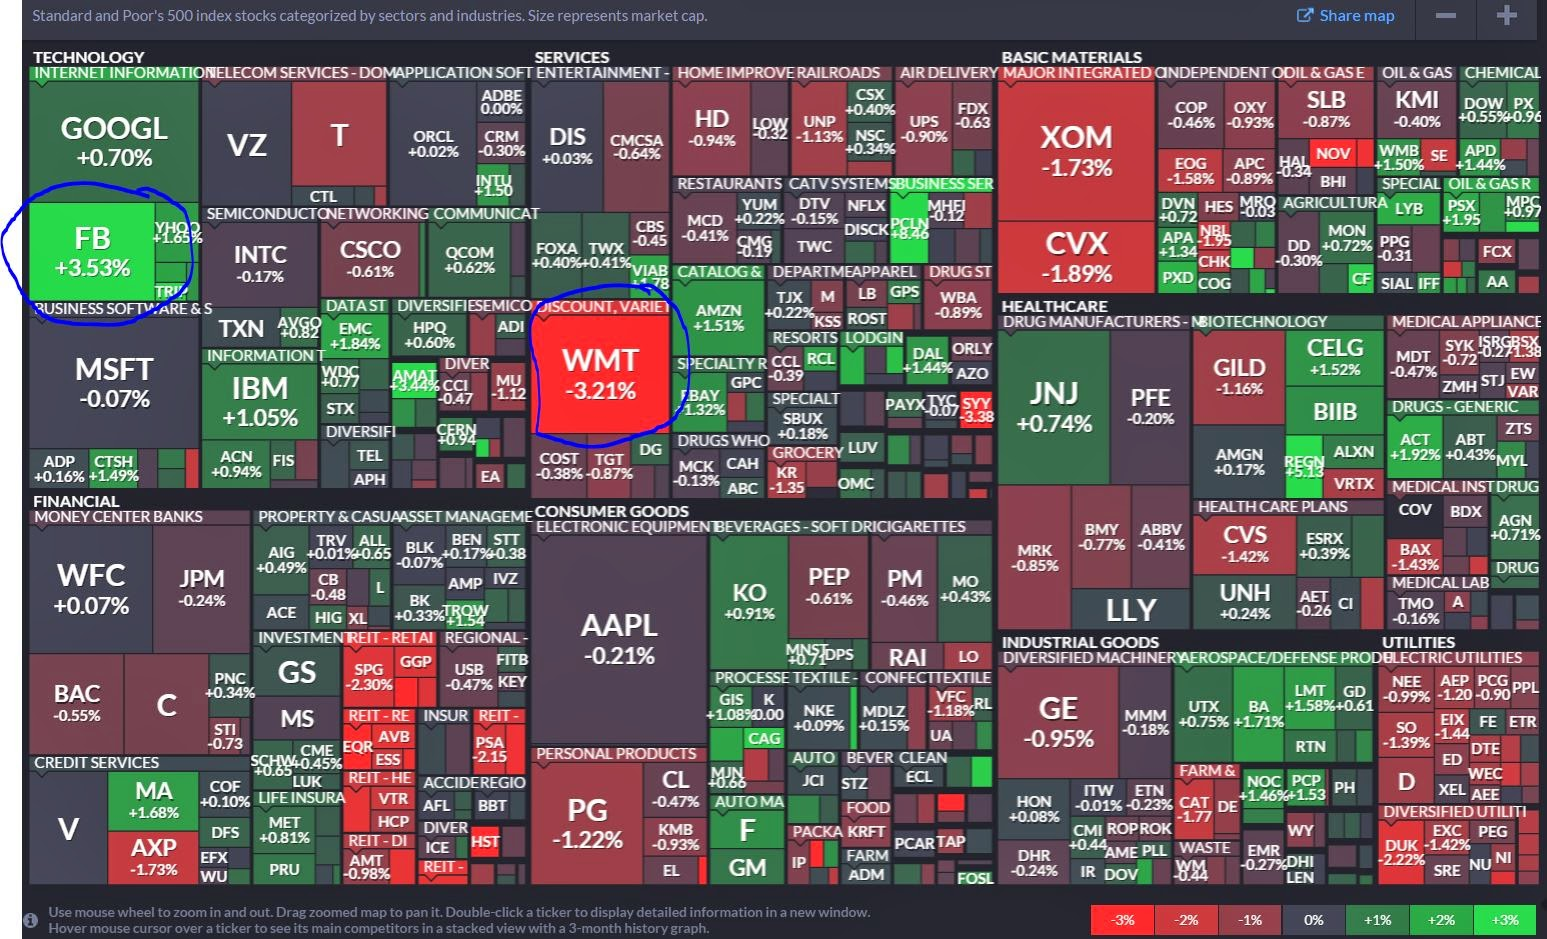 the legend is in the bottom right corner the rectangles contain the ticker symbol for a company s common stock as well as the return the stock generated